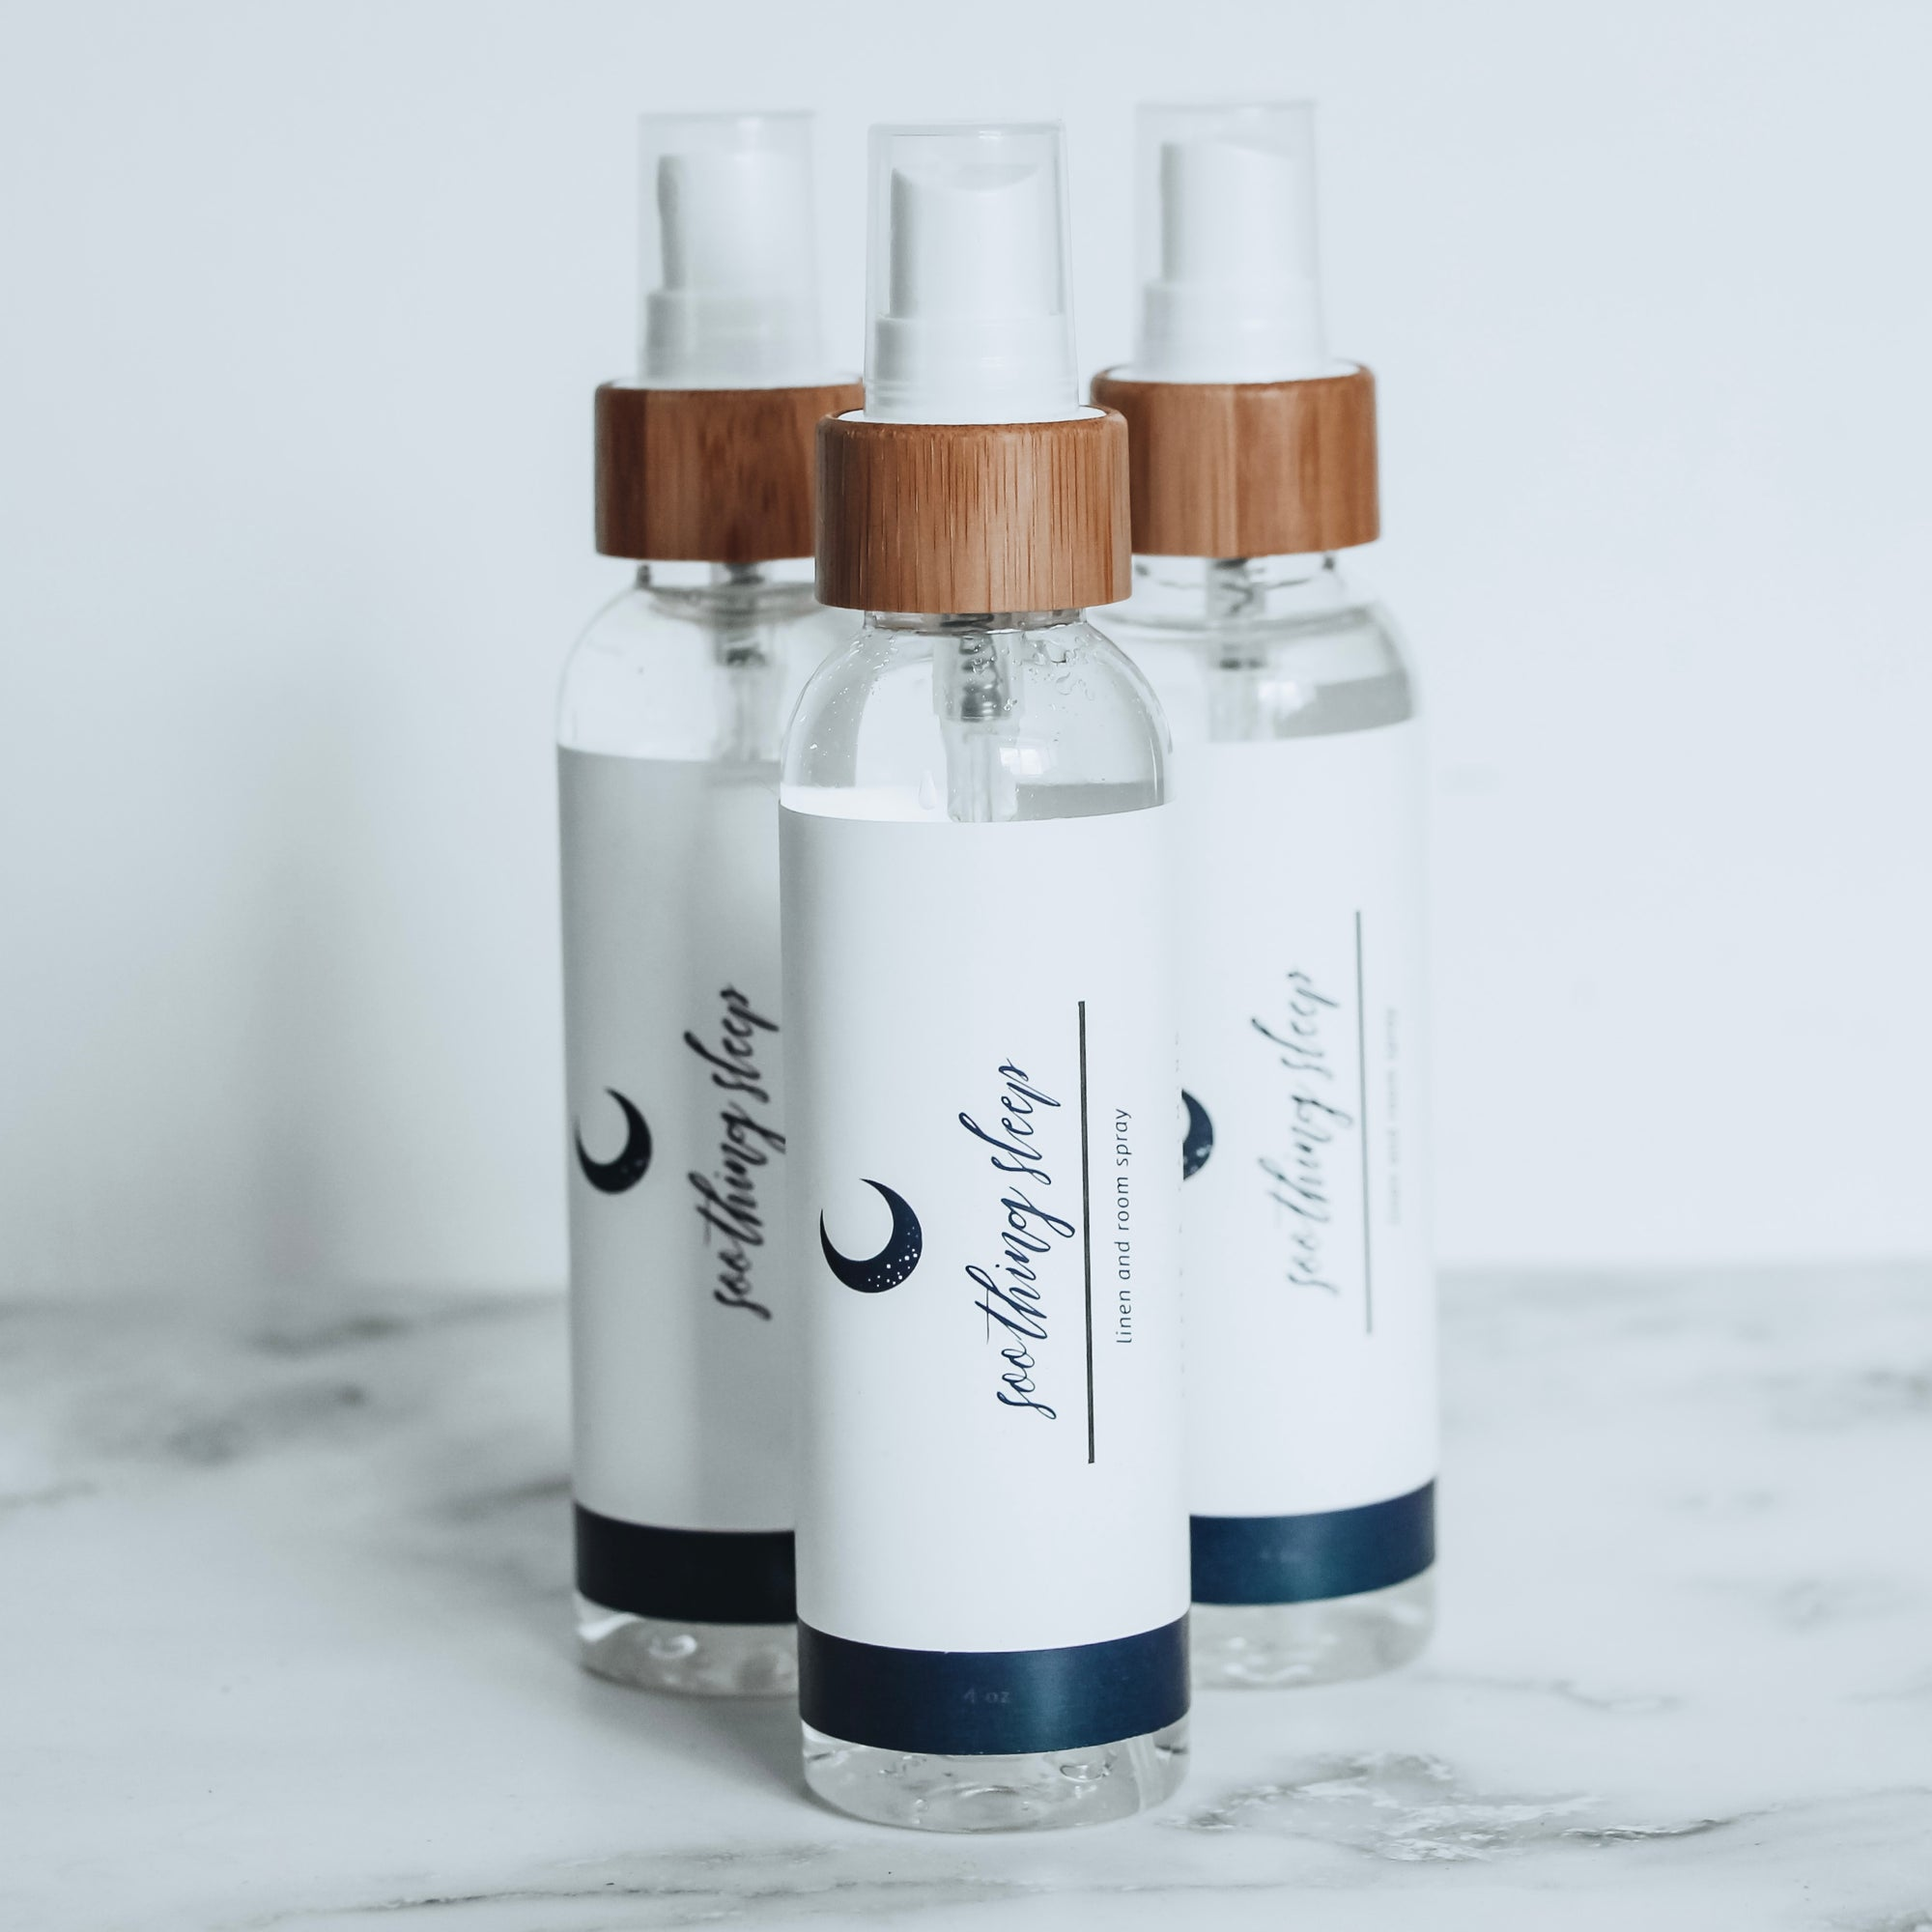 sleep aromatherapy spray, sleep spray, sleep mist, aromatherapy spray, aromatherapy mist, anxiety spray, anxiety aromatherapy spray, anxiety mist, pillow spray, linen spray